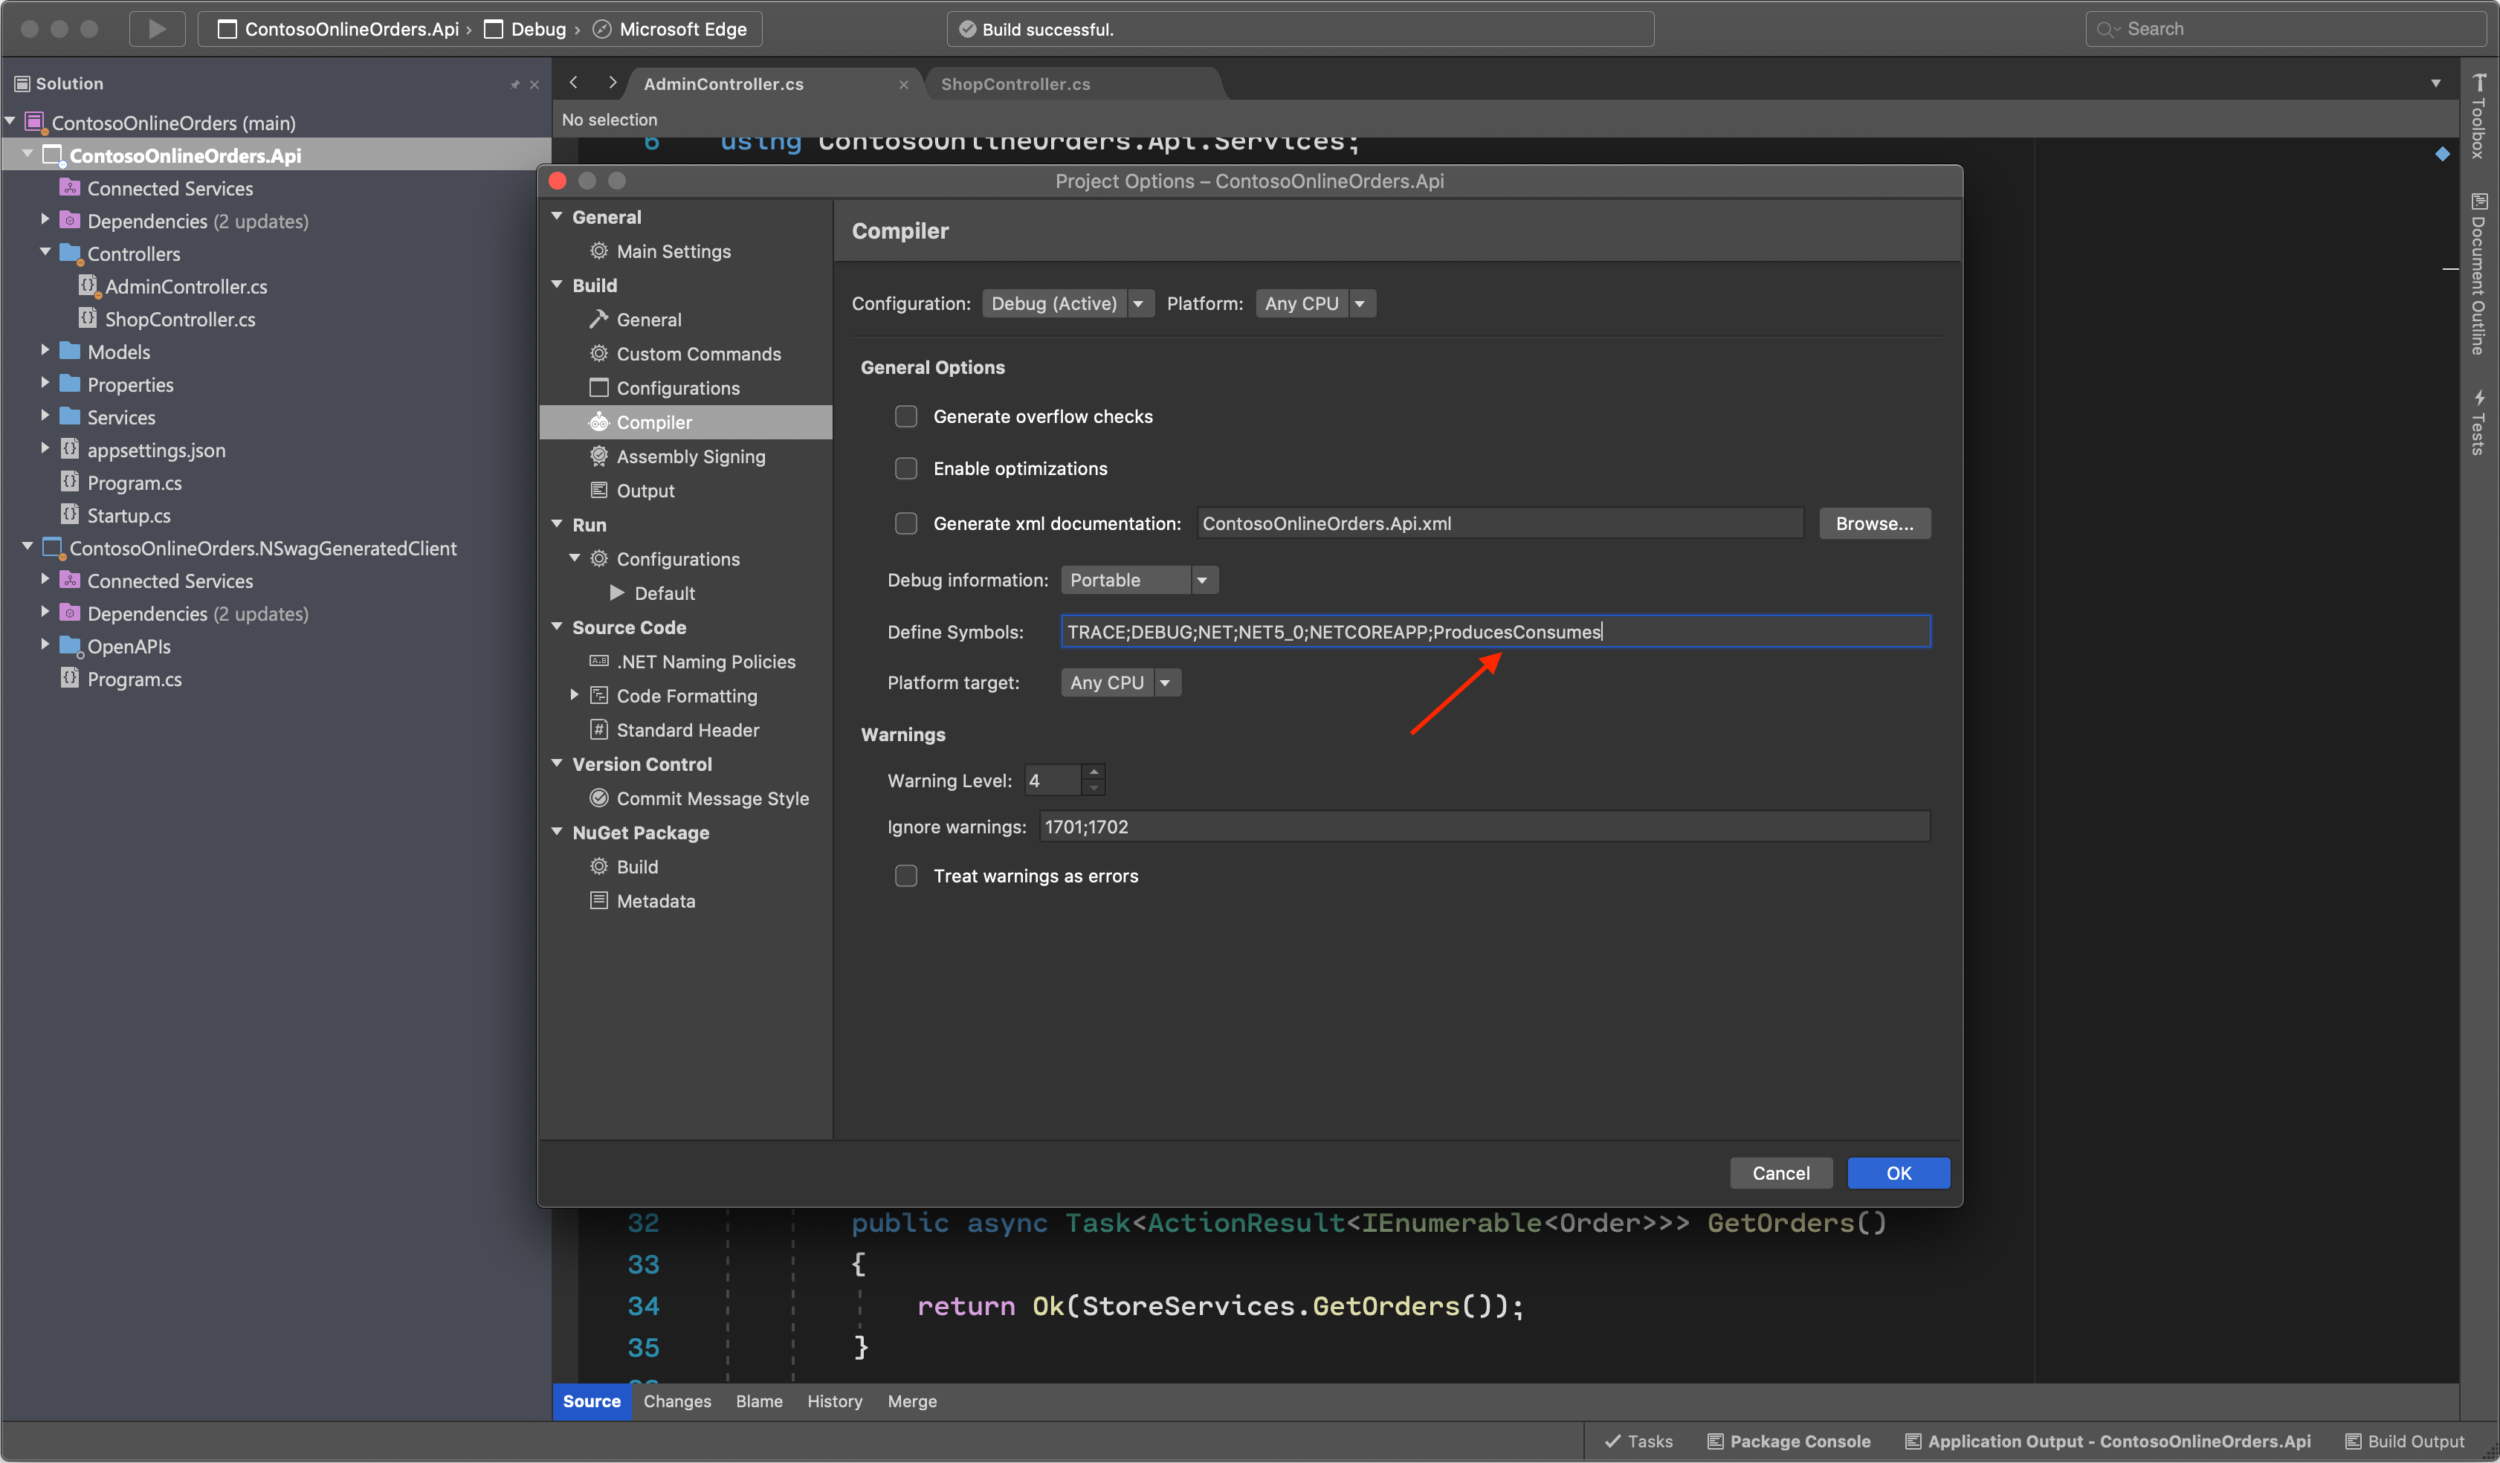 Adding ProducesConsumes to the compiler settings.